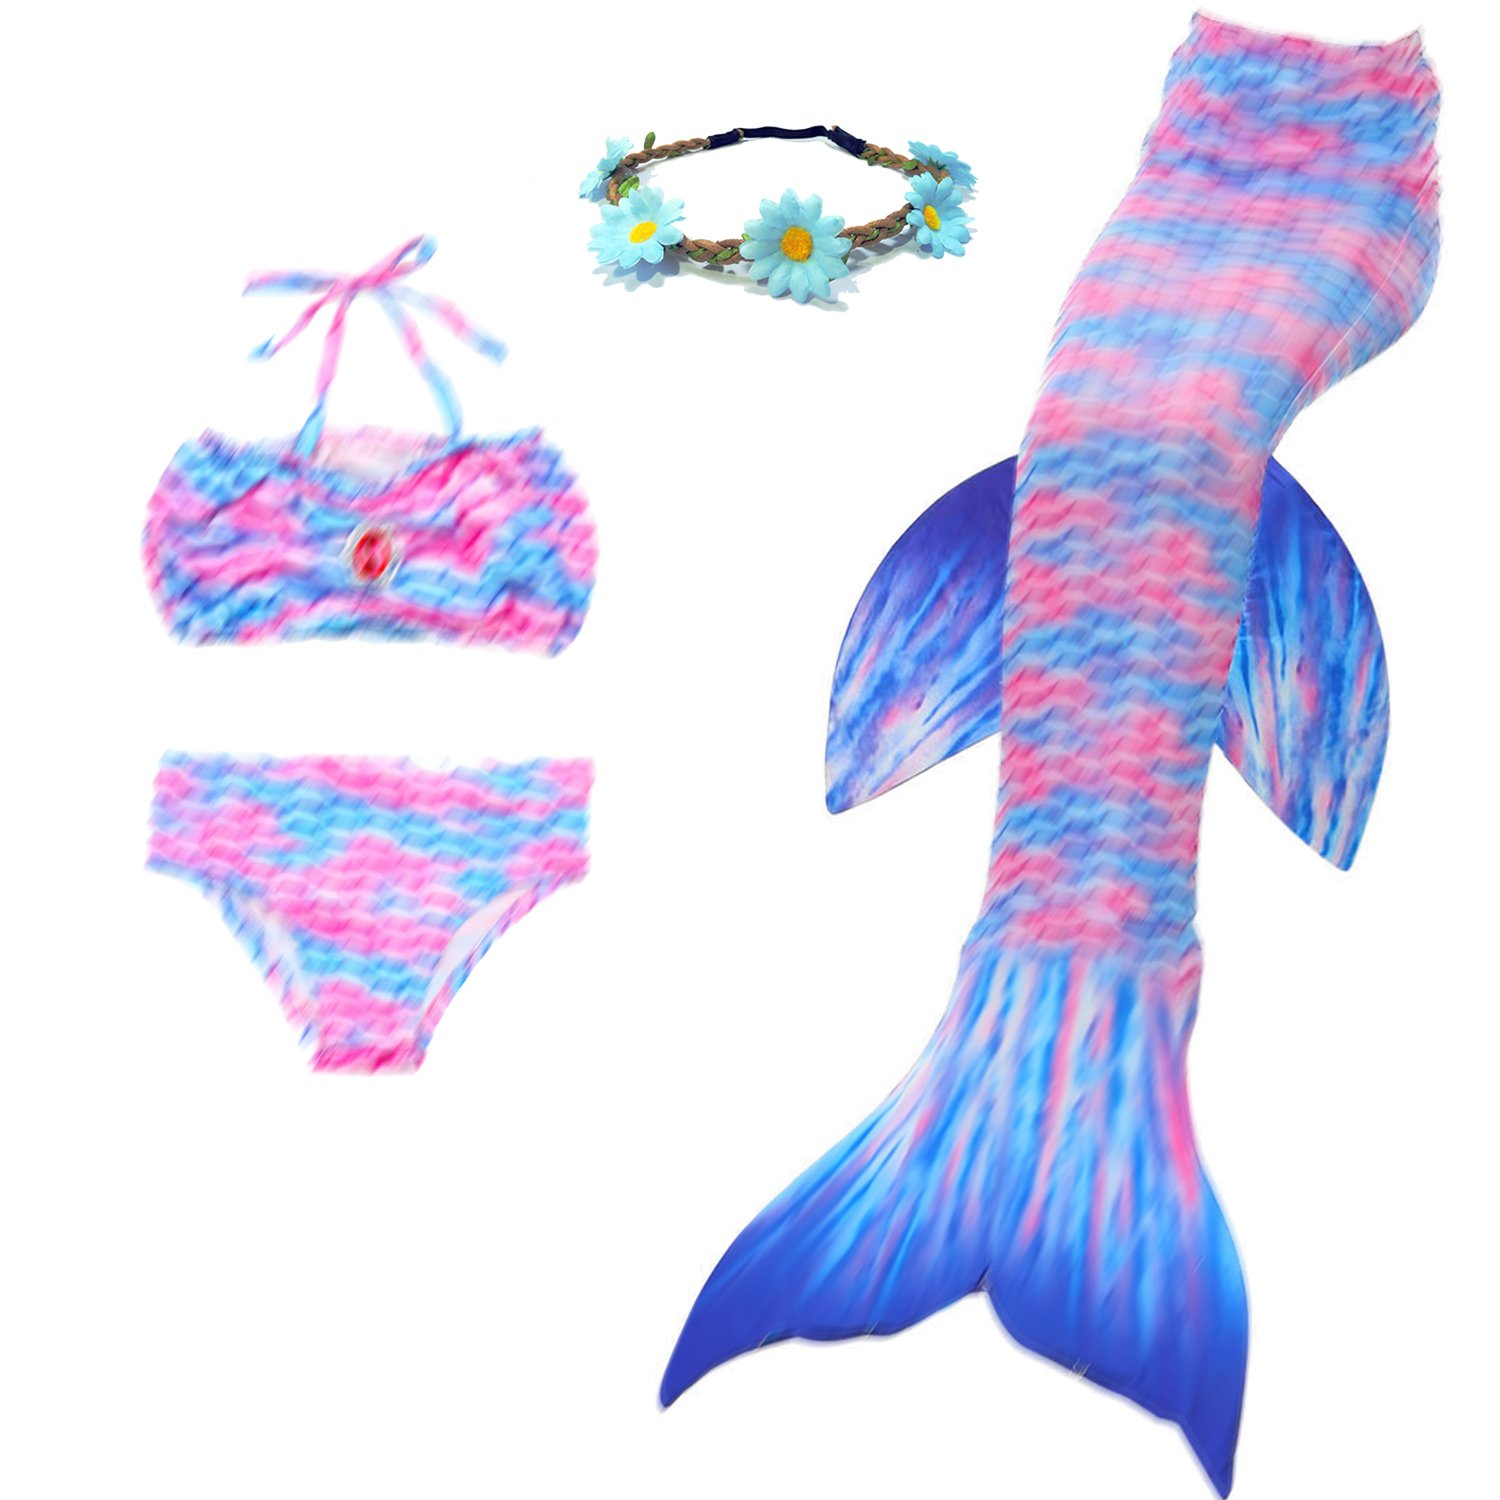 AMENON 4PCs Girls Mermaid Tails Swimsuits for Swimming Toddler Big Girl Bikini Set,3-12